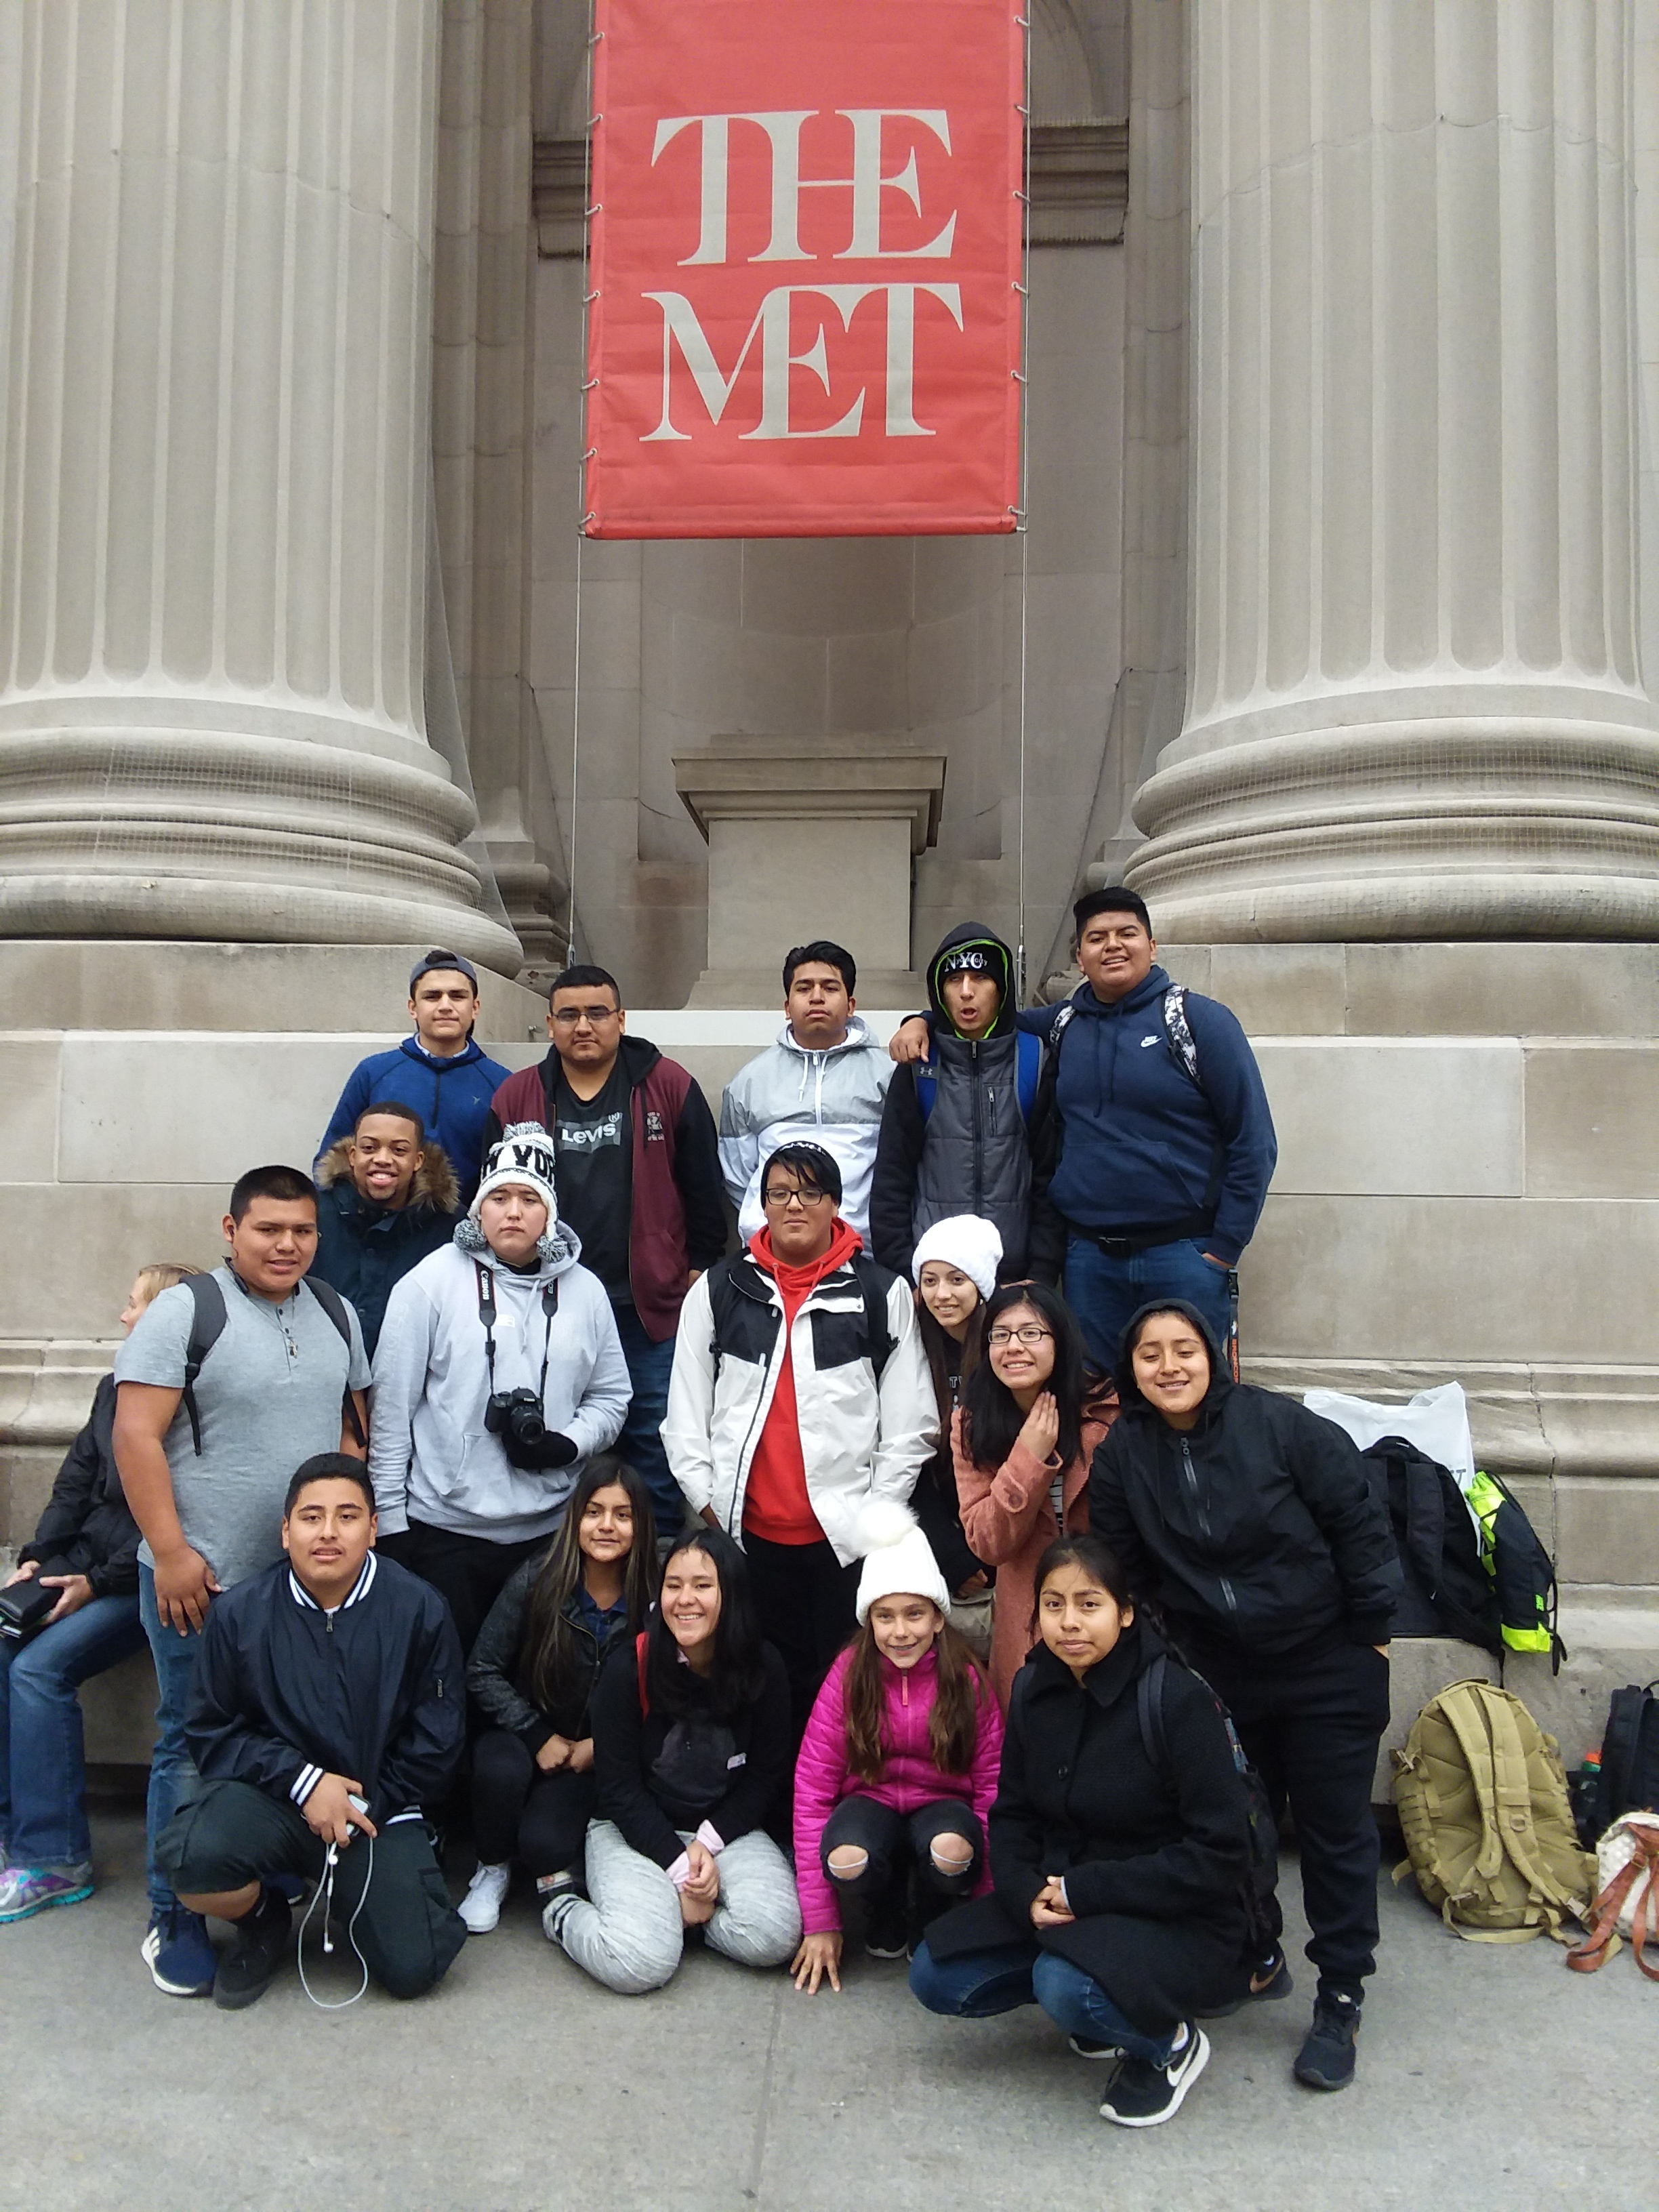 Group Shot - The Met